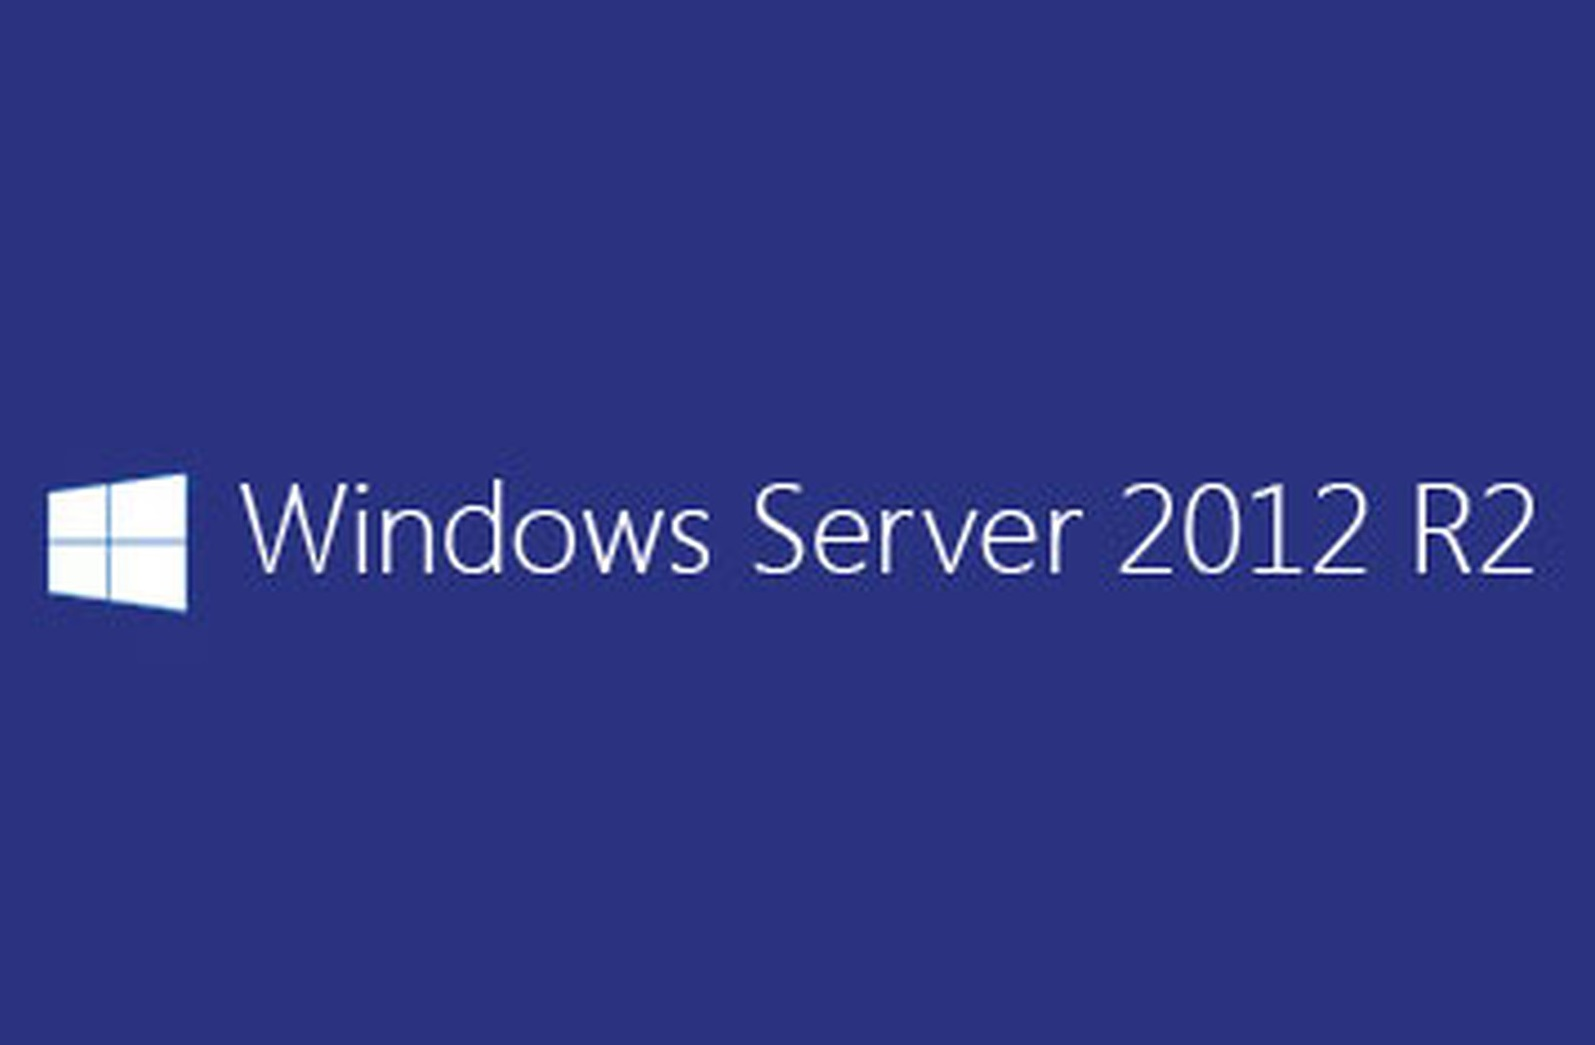 Windows Server 2012 R2 Free Download – Igetintopc.org